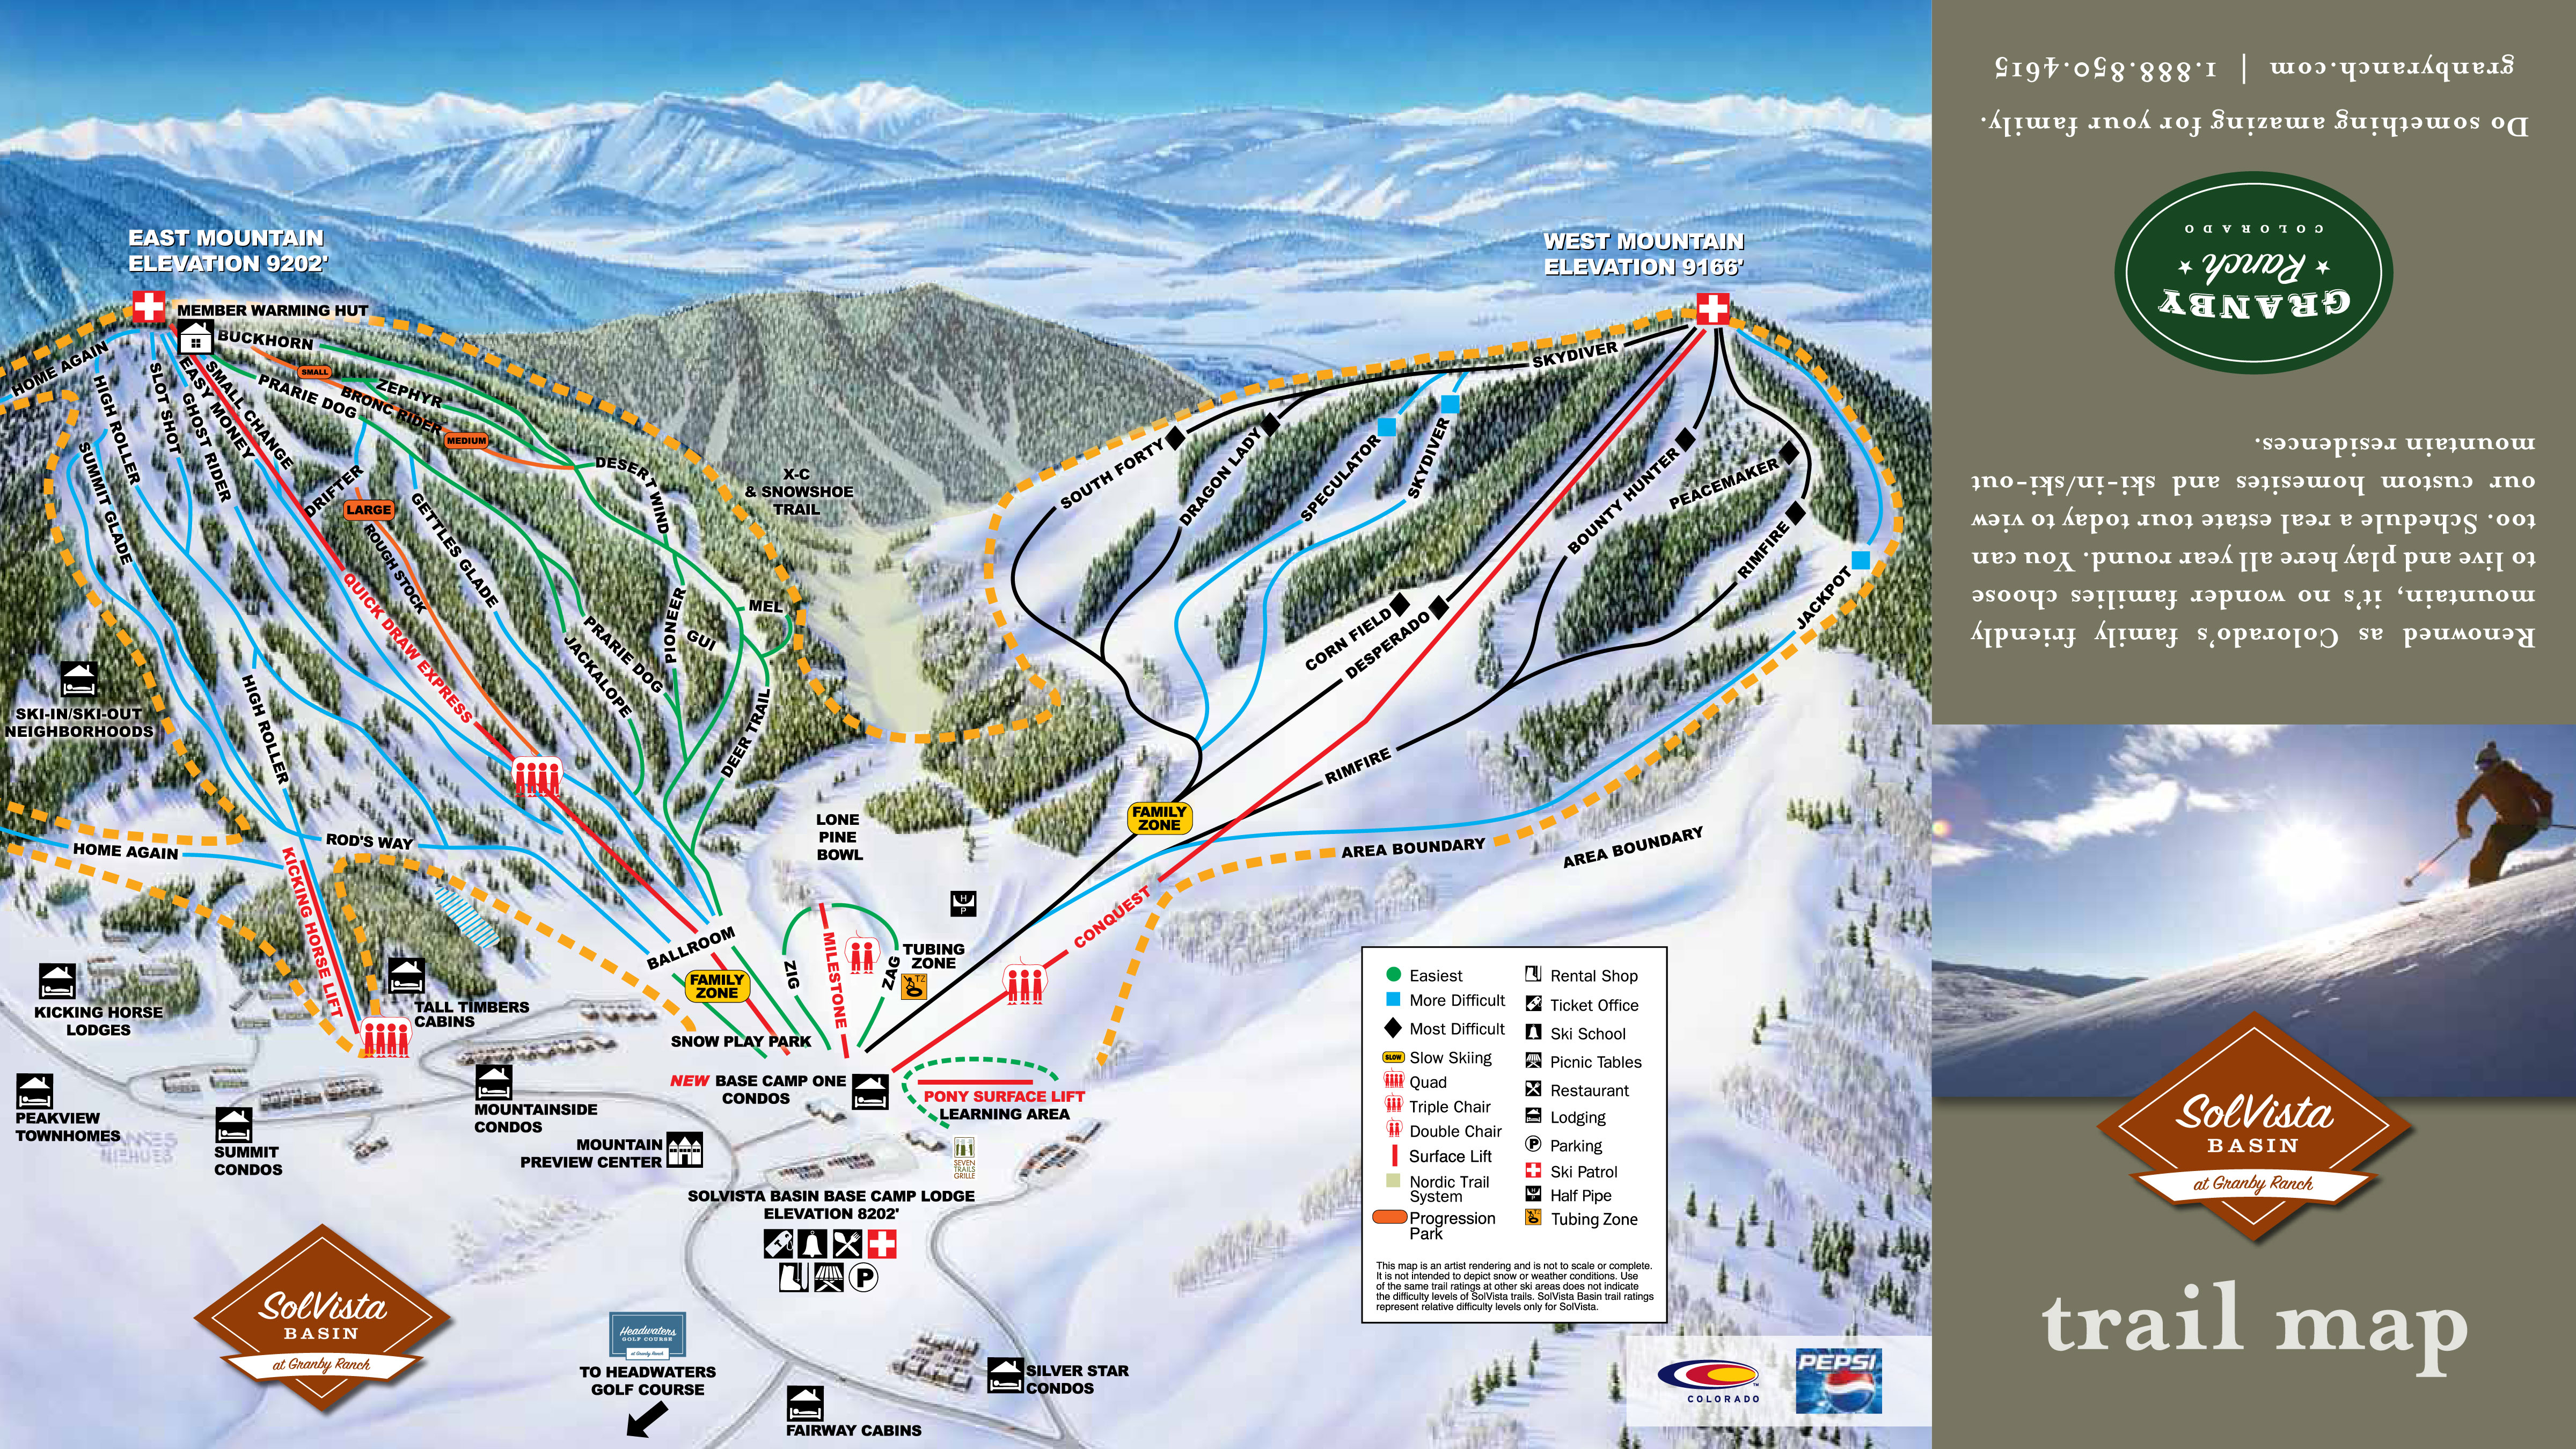 Solvista Ski Resort Map Alltrips